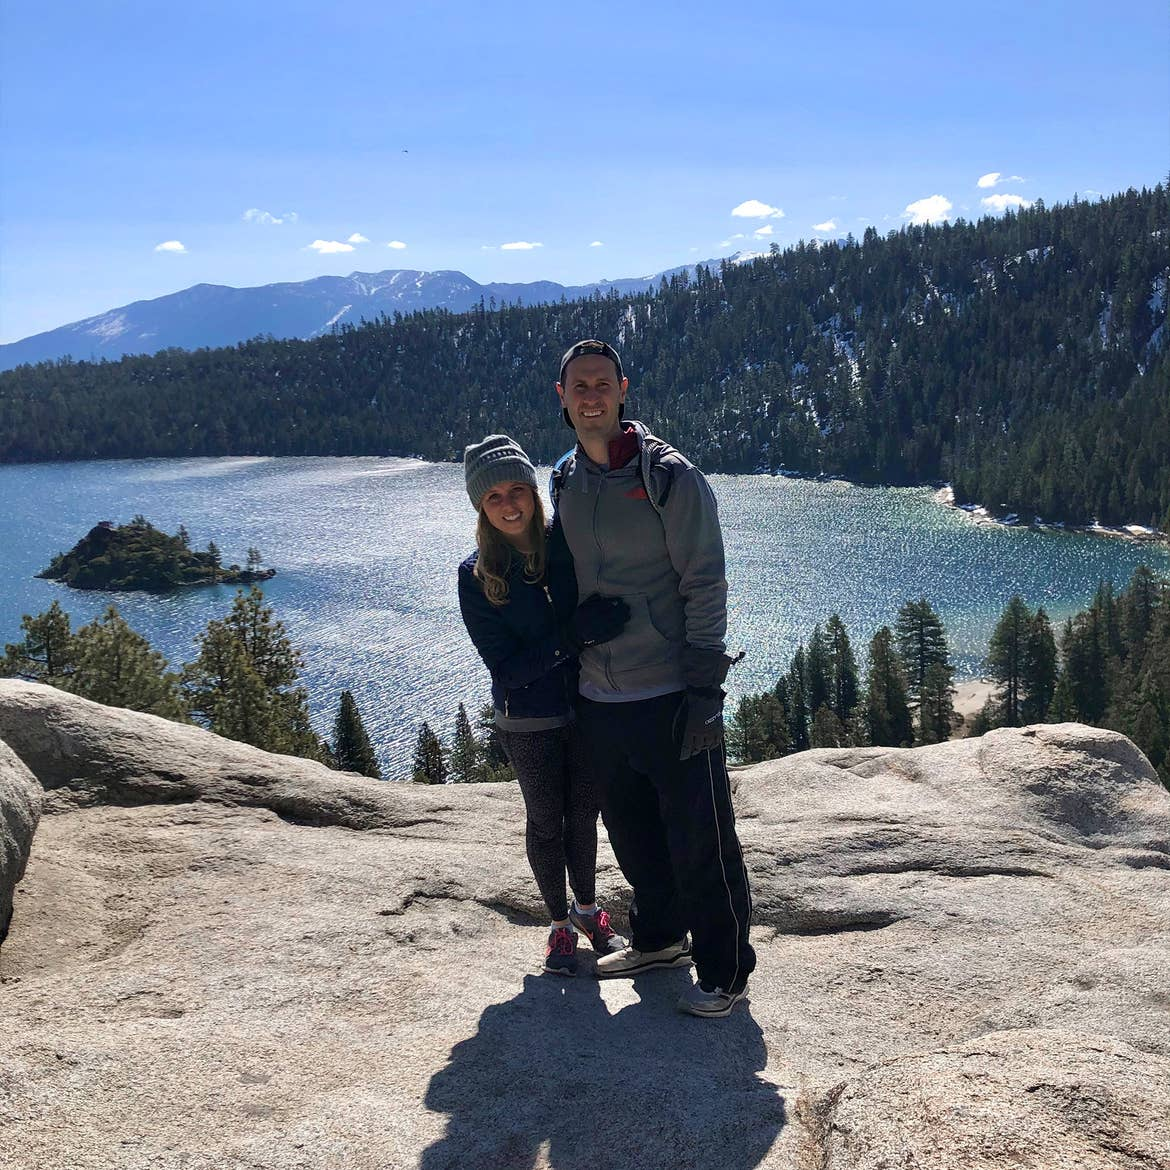 A woman (left) wears a grey beanie and black leather jacket and gloves while hugging a man (right) wearing a grey sip-up hoodie and green beanie in front of a mountain range at Lake Tahoe, Nevada.